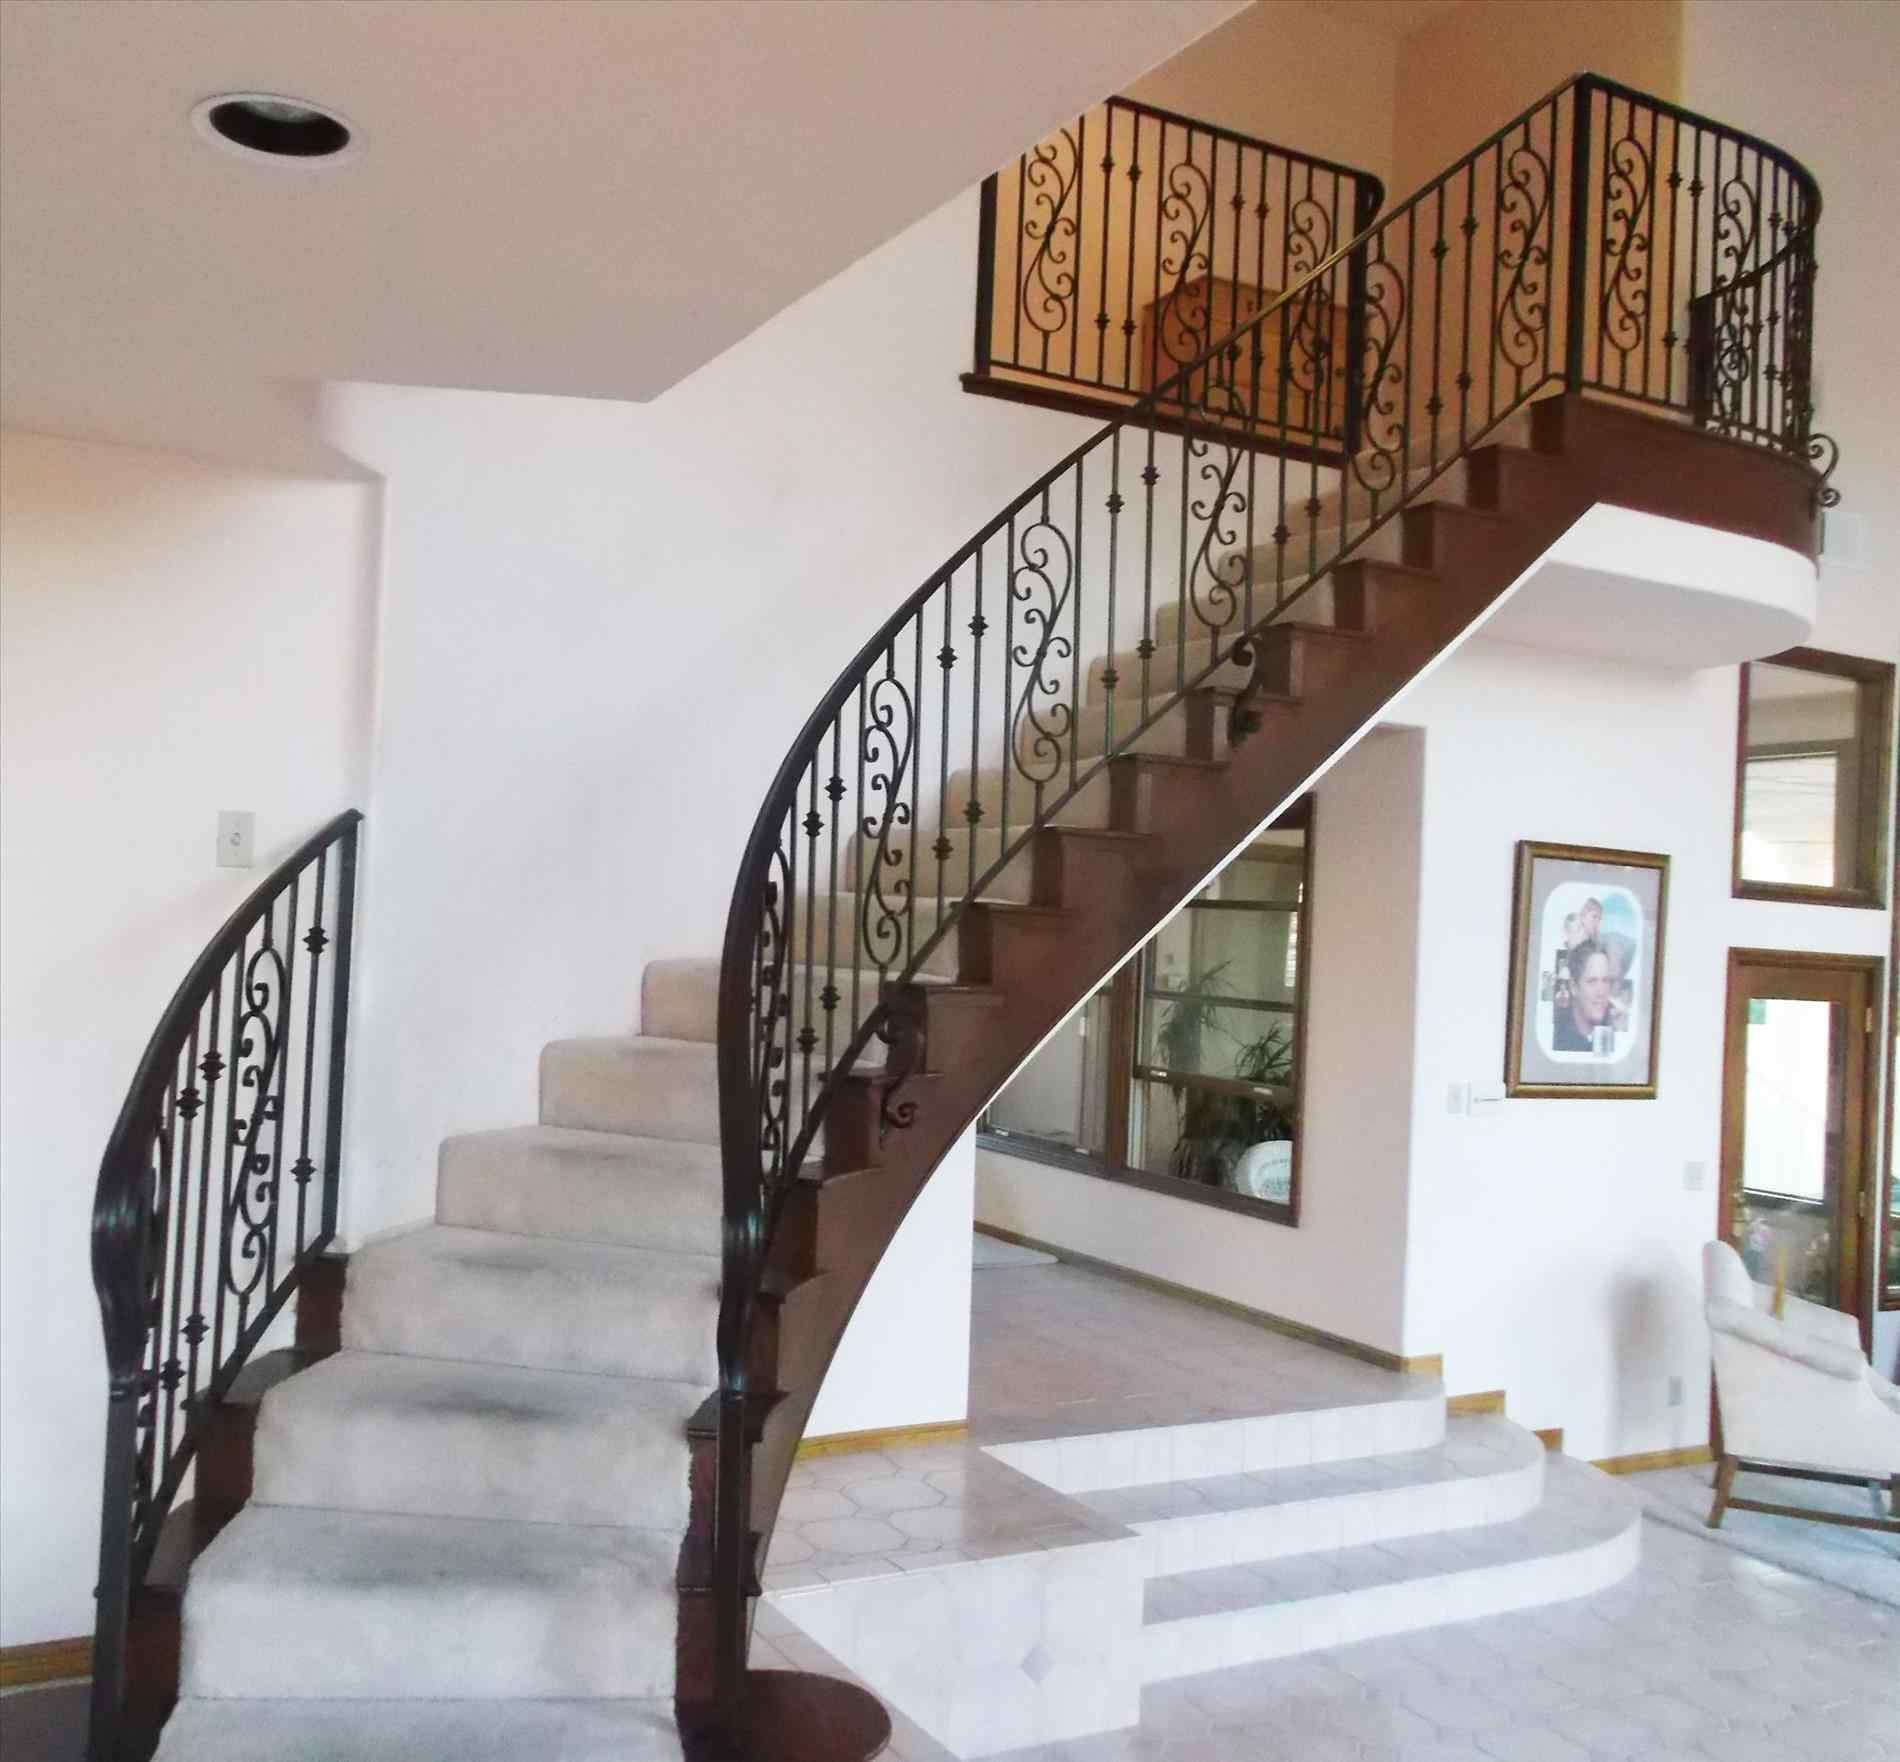 Luxury And Elegant Stairs And Rails Design For Luxurious Home | Interior Handrails For Steps | Aircraft Cable | Wrought Iron | Western | Closed Staircase | Stair Bannister